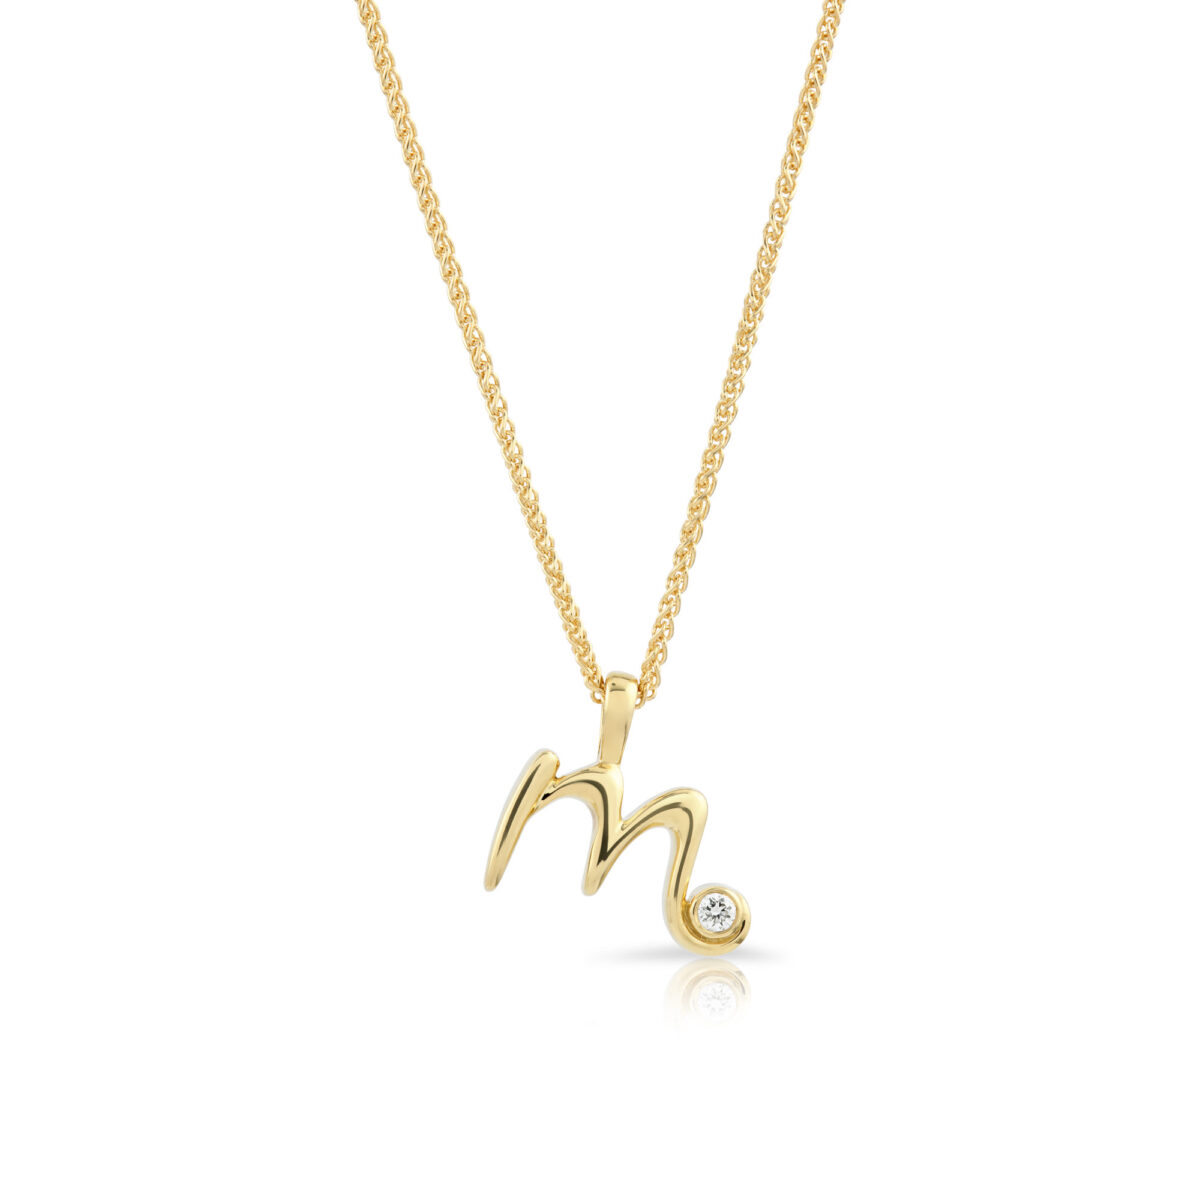 product/i/n/initialze_necklace_30_41_732_b.jpg;;product/i/n/initialze_necklace_30_41_732_c.jpg;;product/i/n/initialze_necklace_30_41_732.jpg;;product/i/n/initialze_necklace_30_41_732_l_s.jpg;;product/d/m/dmr-packaging_206_1_4.jpg